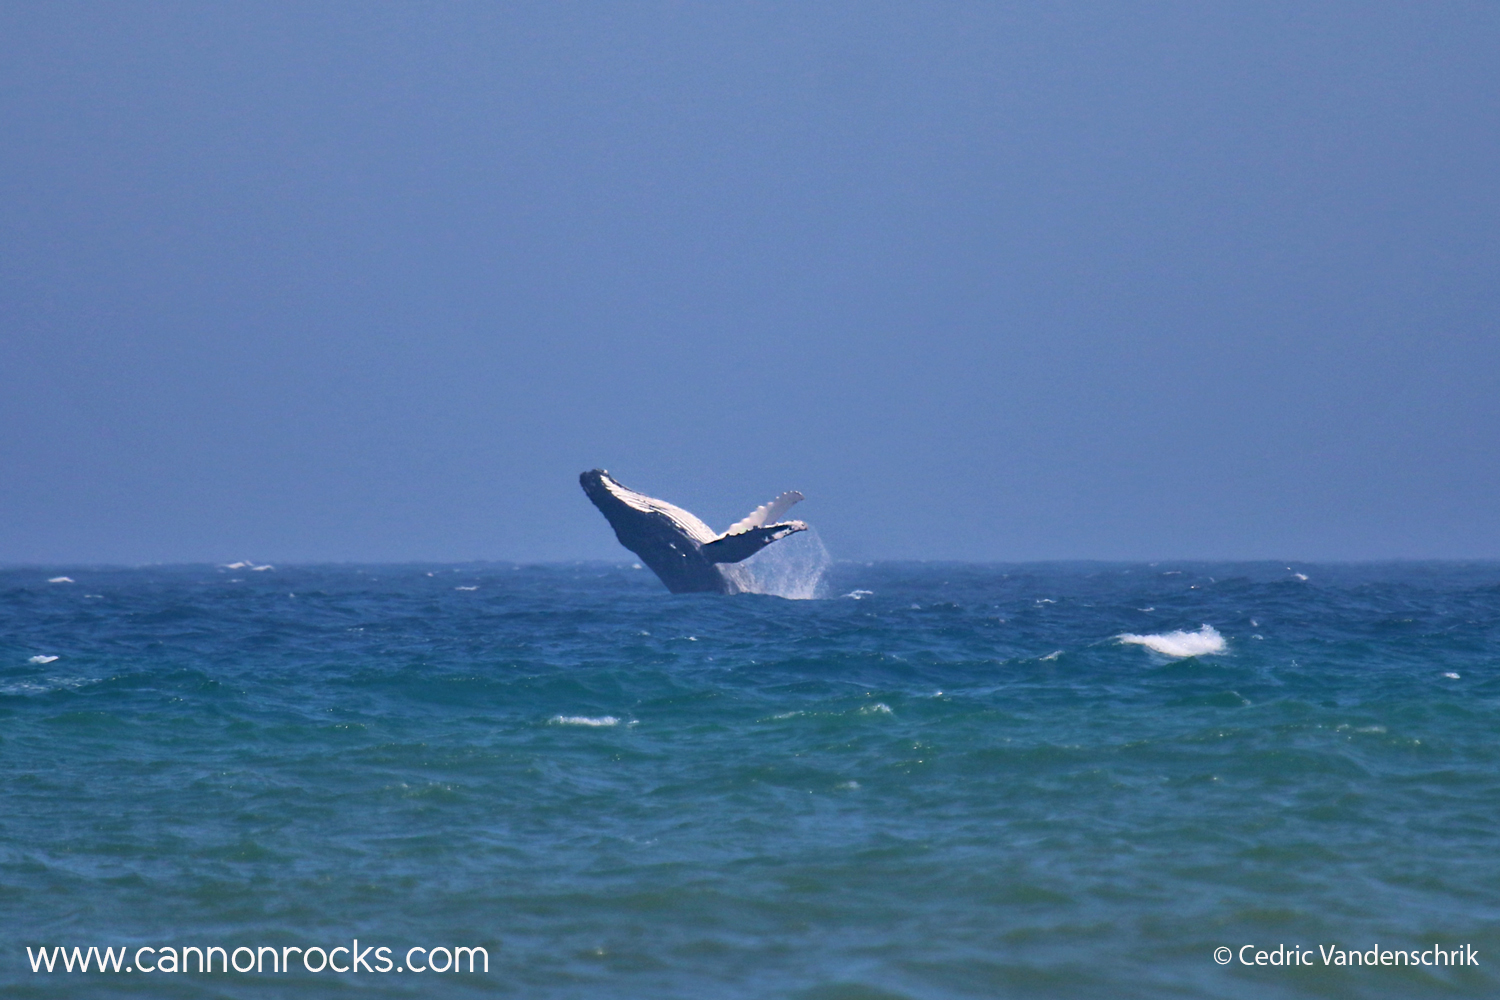 Whale Jumping in Cannon Rocks, South Africa